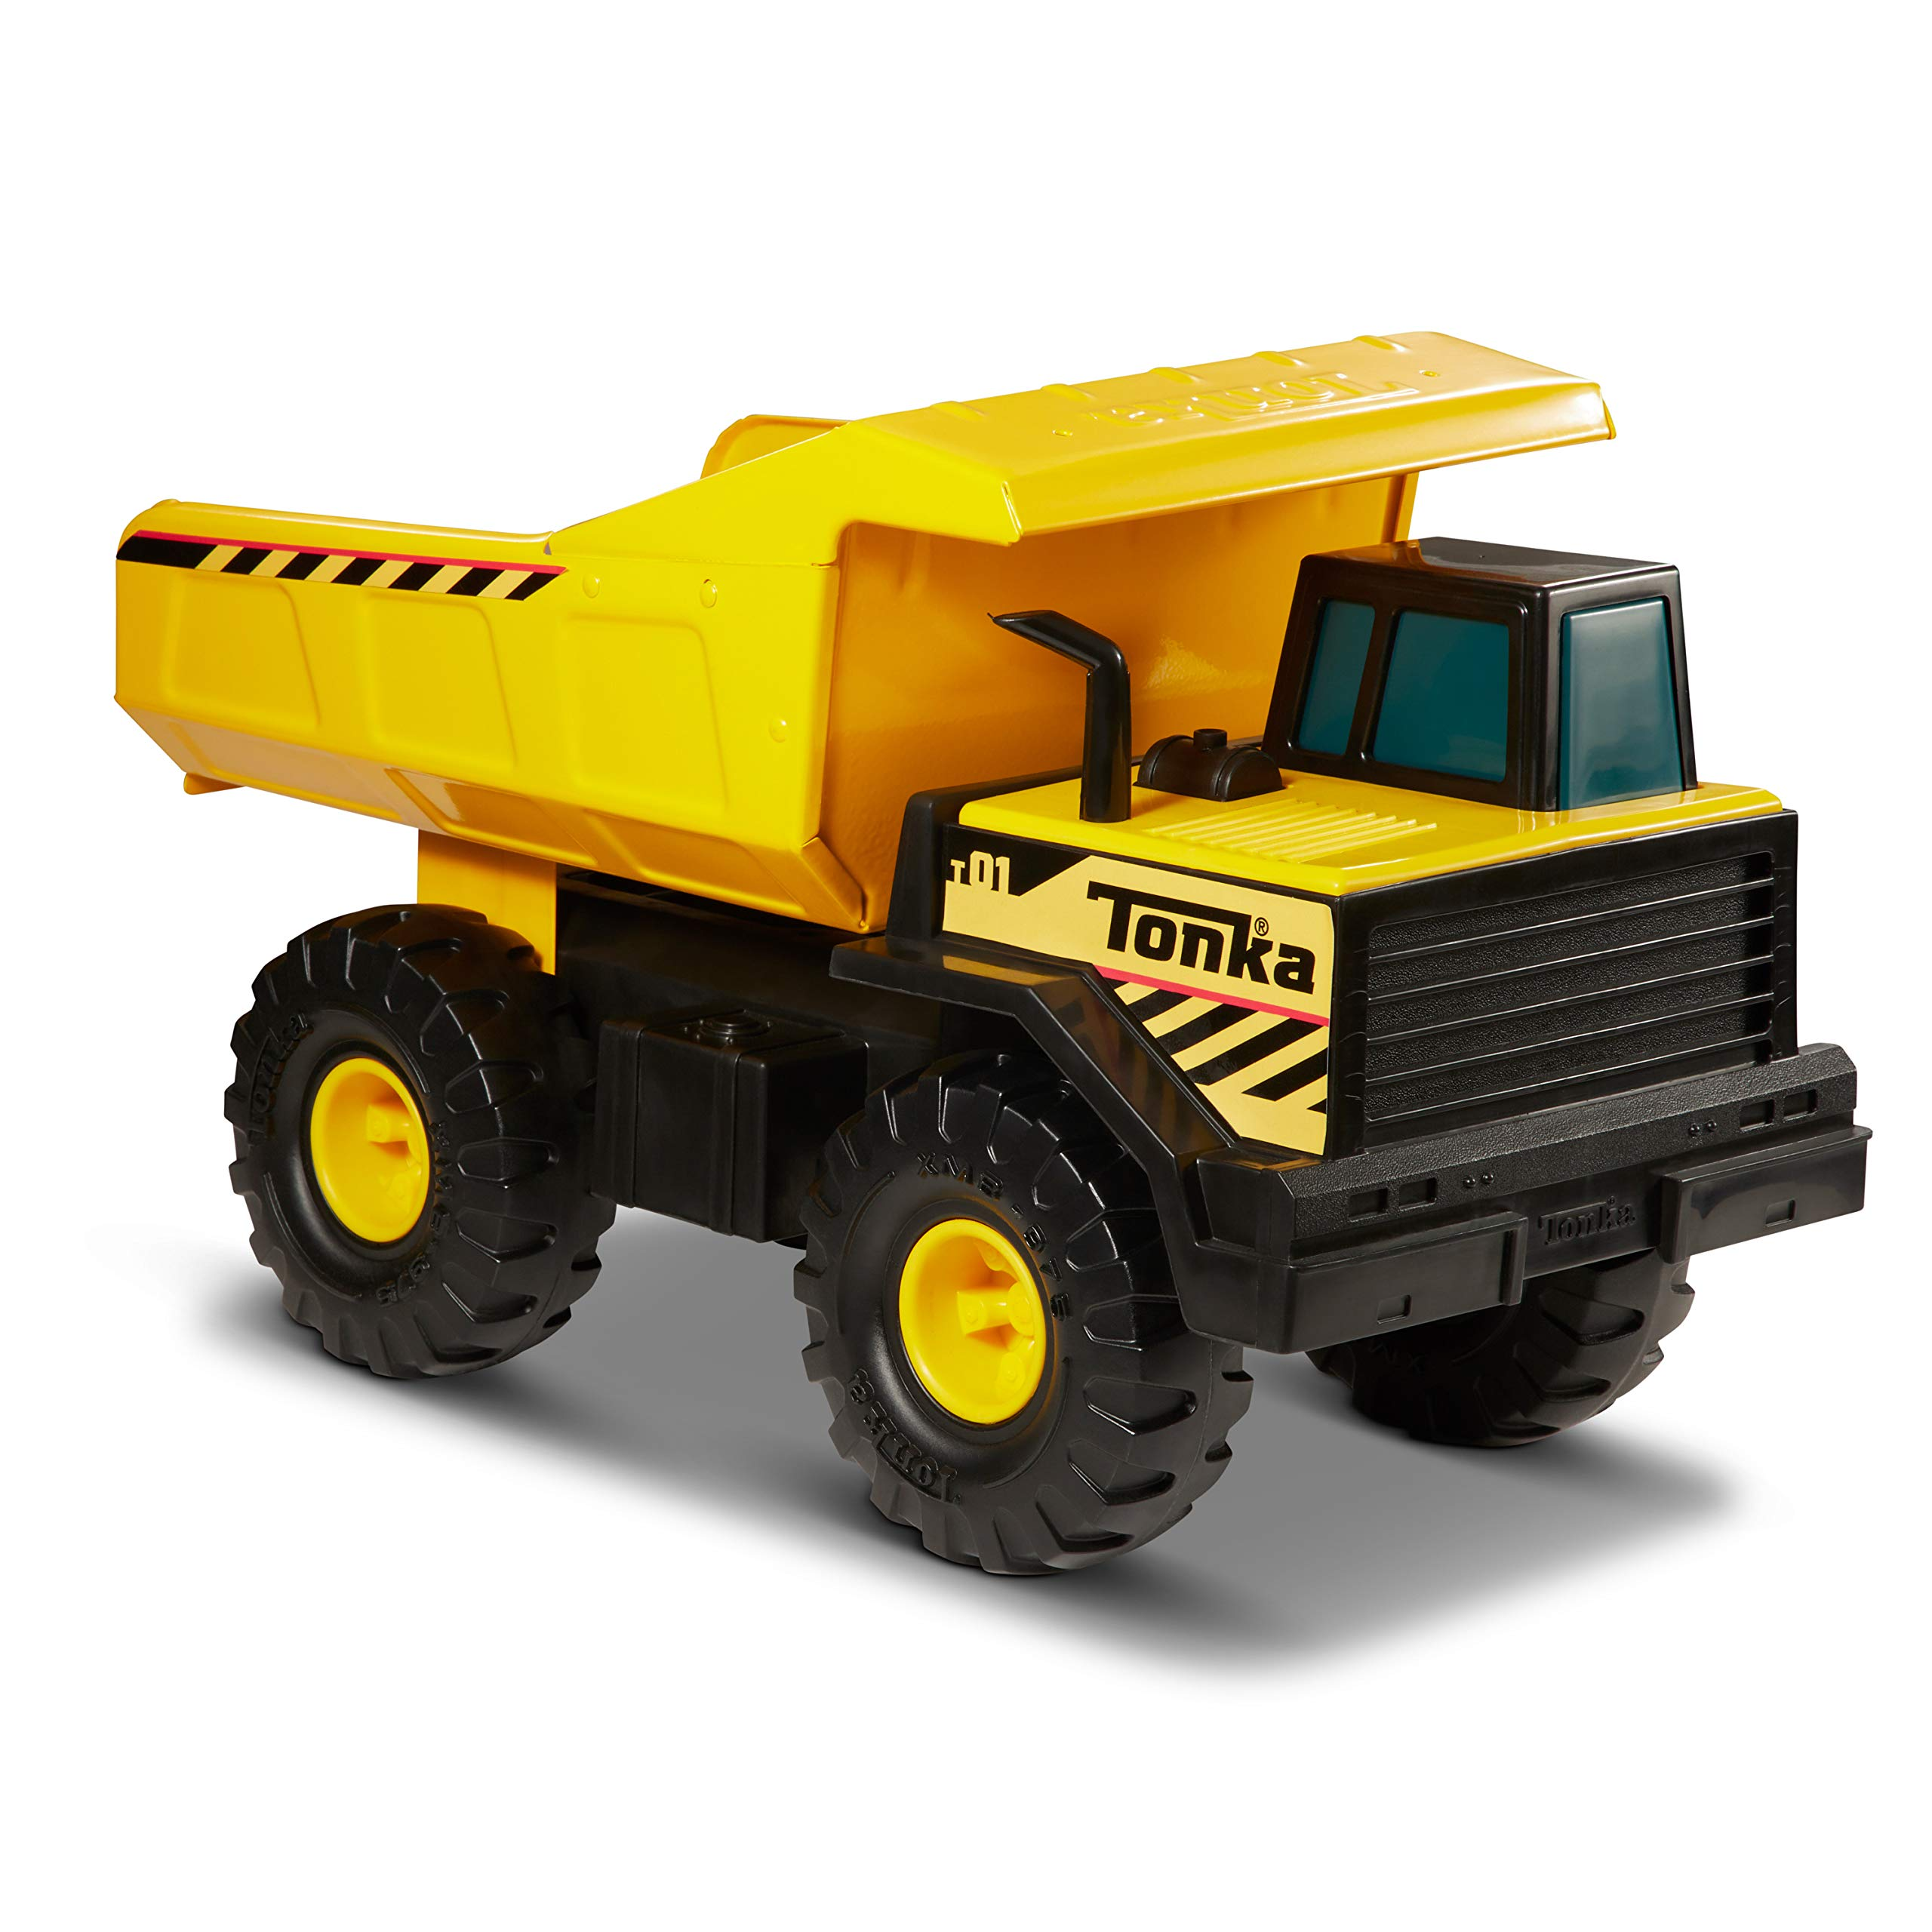 Tonka Classic Steel Mighty Dump Truck Vehicle by Funrise